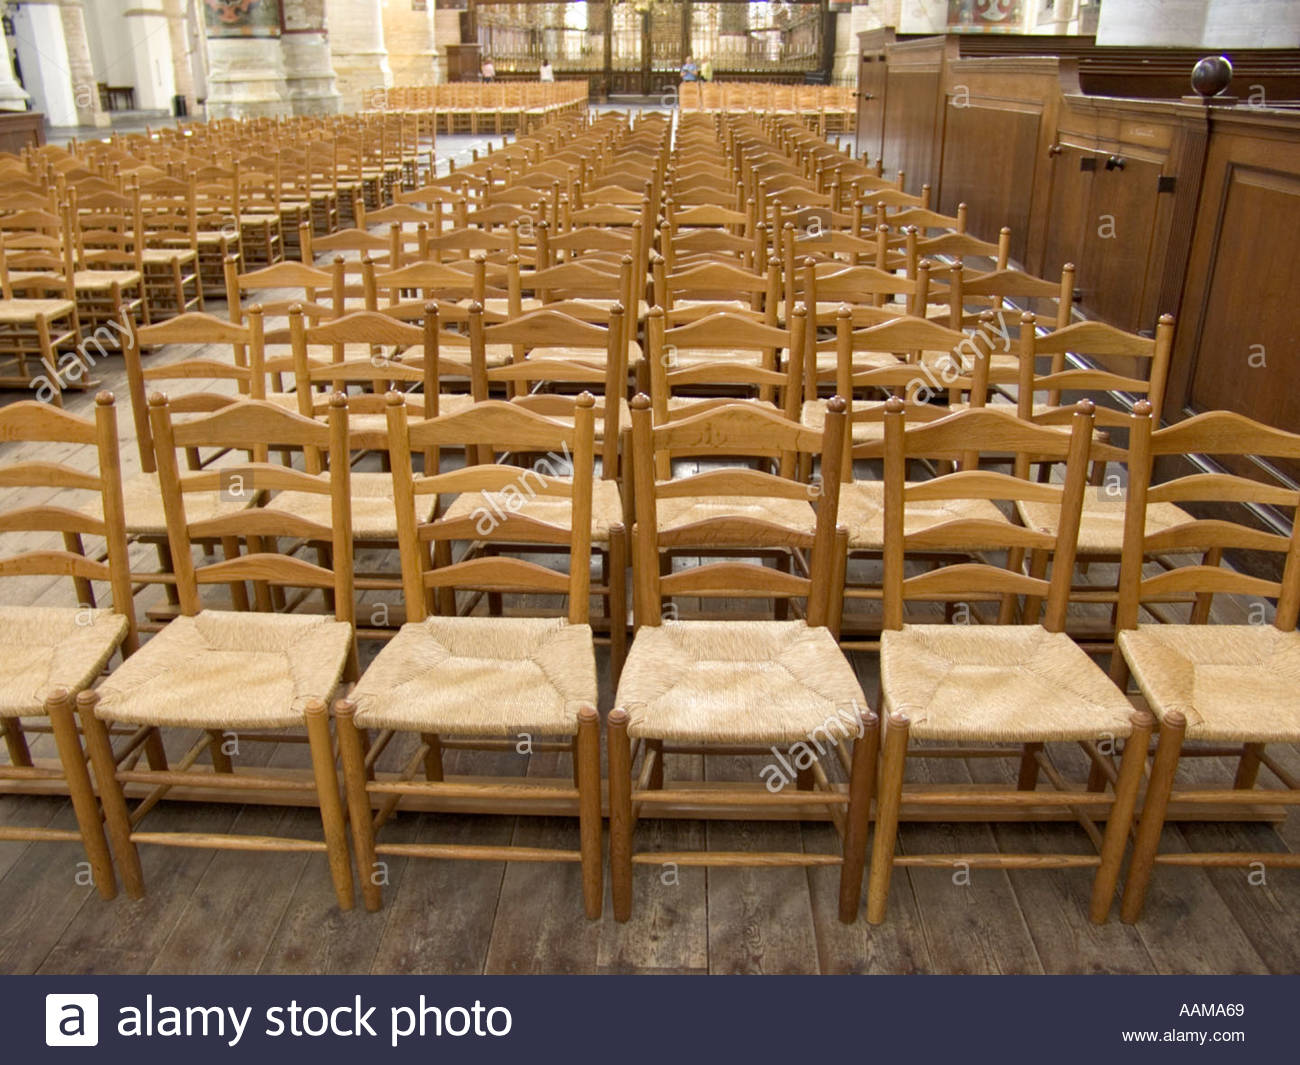 Old Style Chairs Lined Up In An Church St Bavo Holland